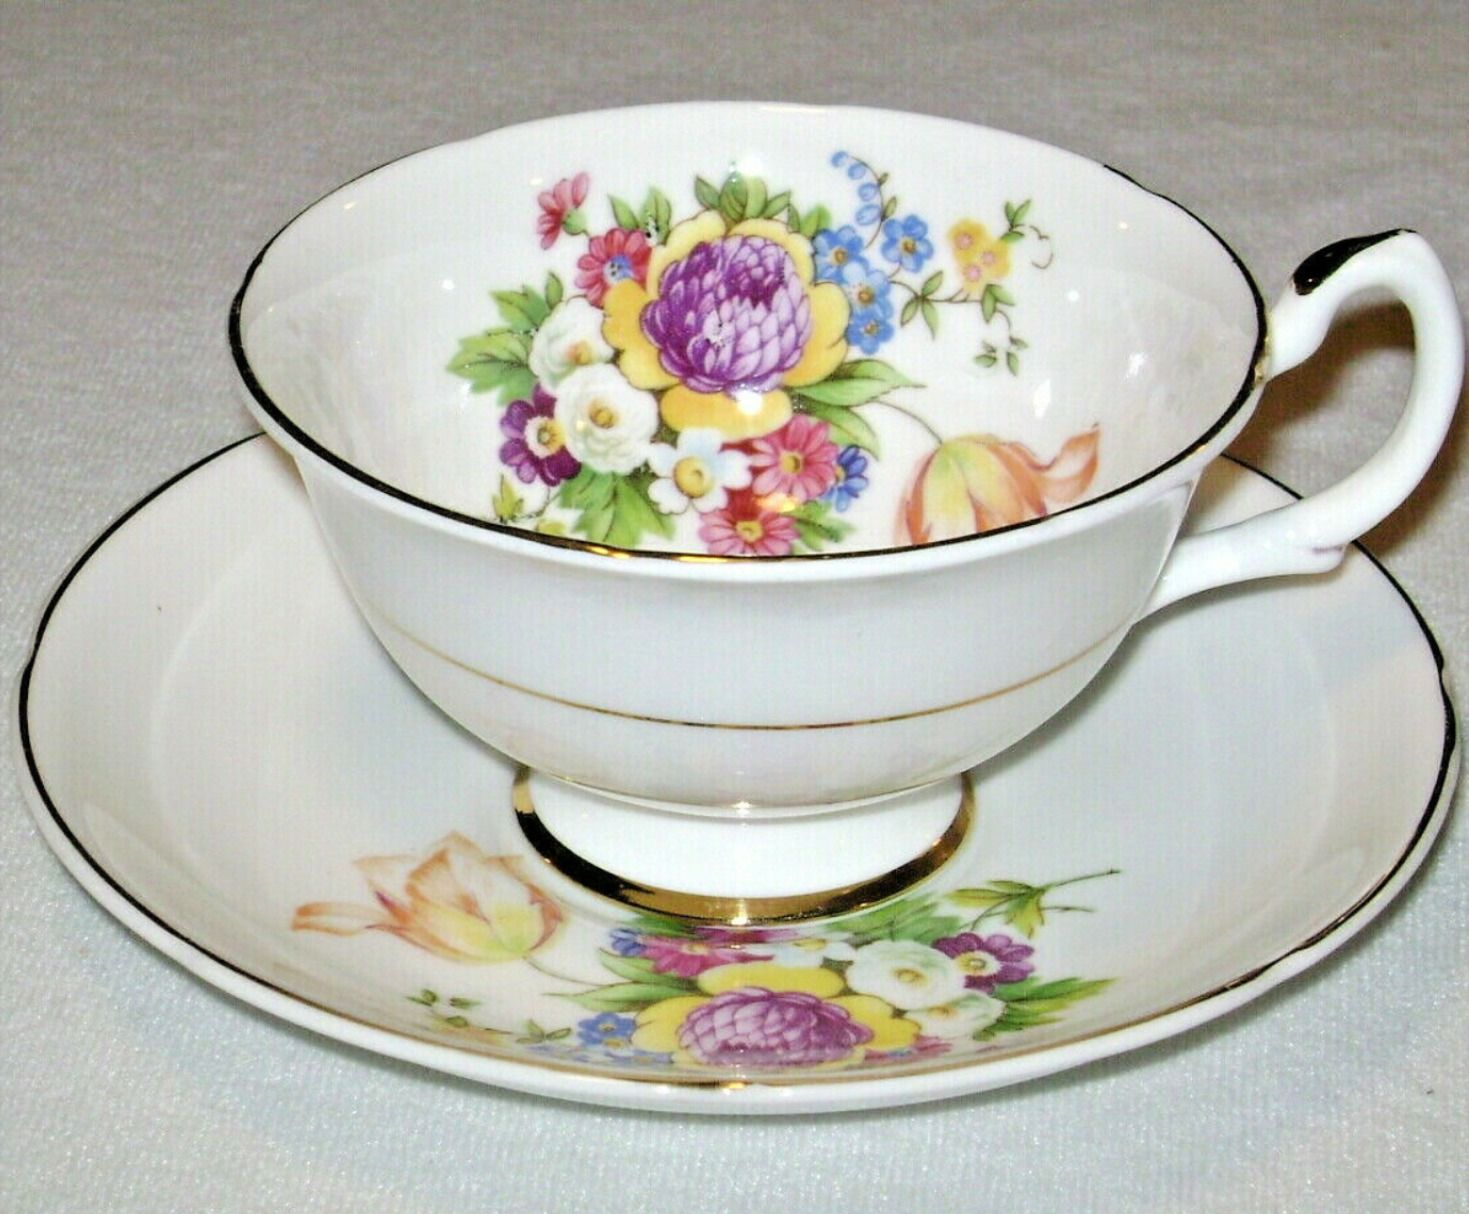 Pin On Vintage Tea Cups And Saucers